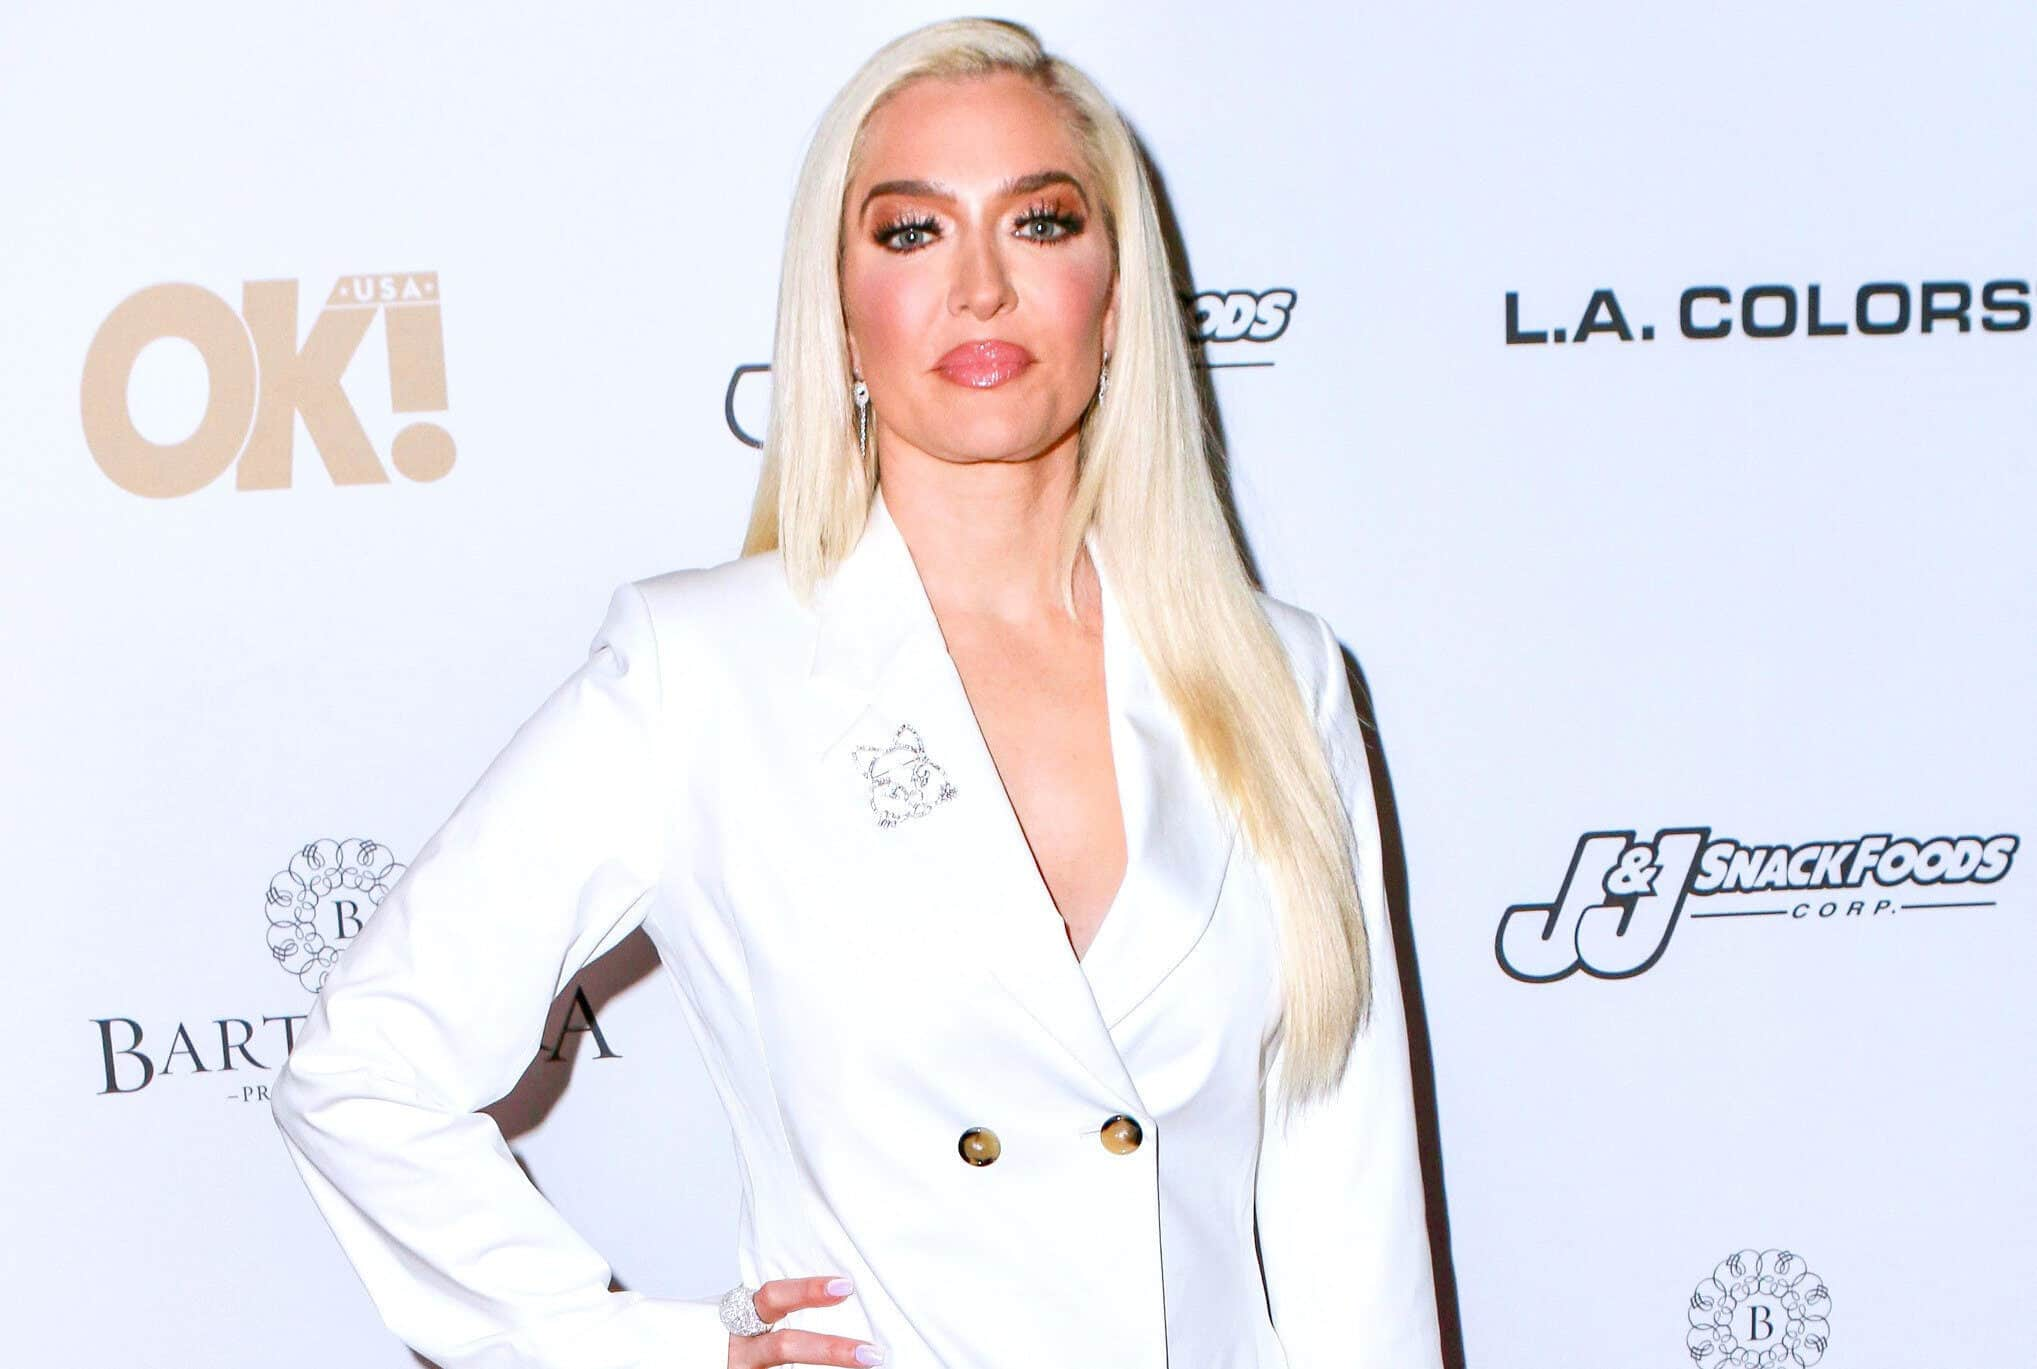 Erika Jayne is Accused of Failing to Provide Access to Financial Records as RHOBH Star's Attorney is Called to Court Over Potential Sham Divorce